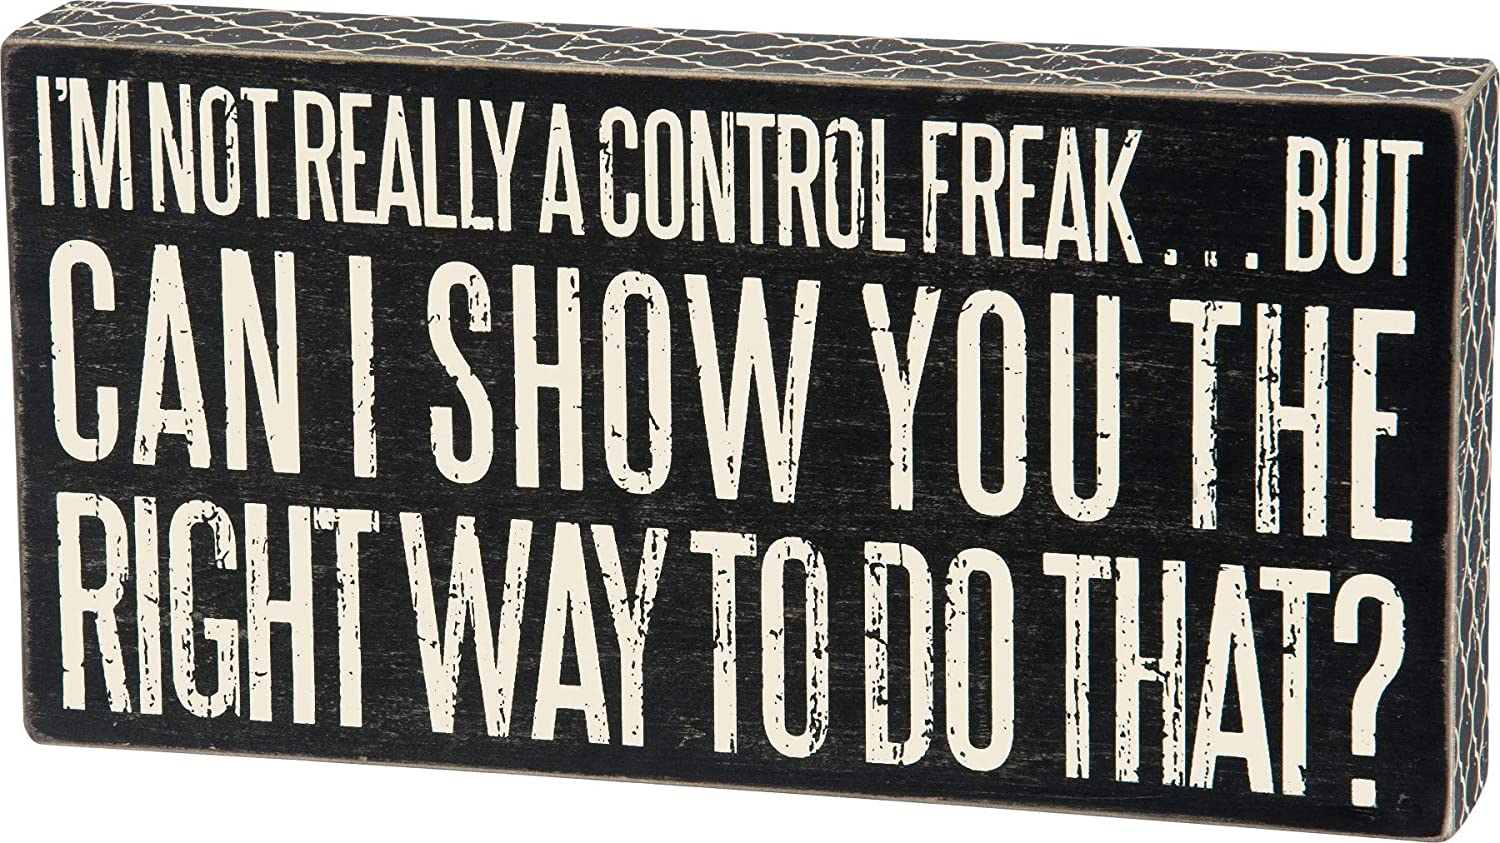 Primitives by Kathy 25173 Lattice Trimmed Box Sign, 6 x 12-Inches, Control Freak